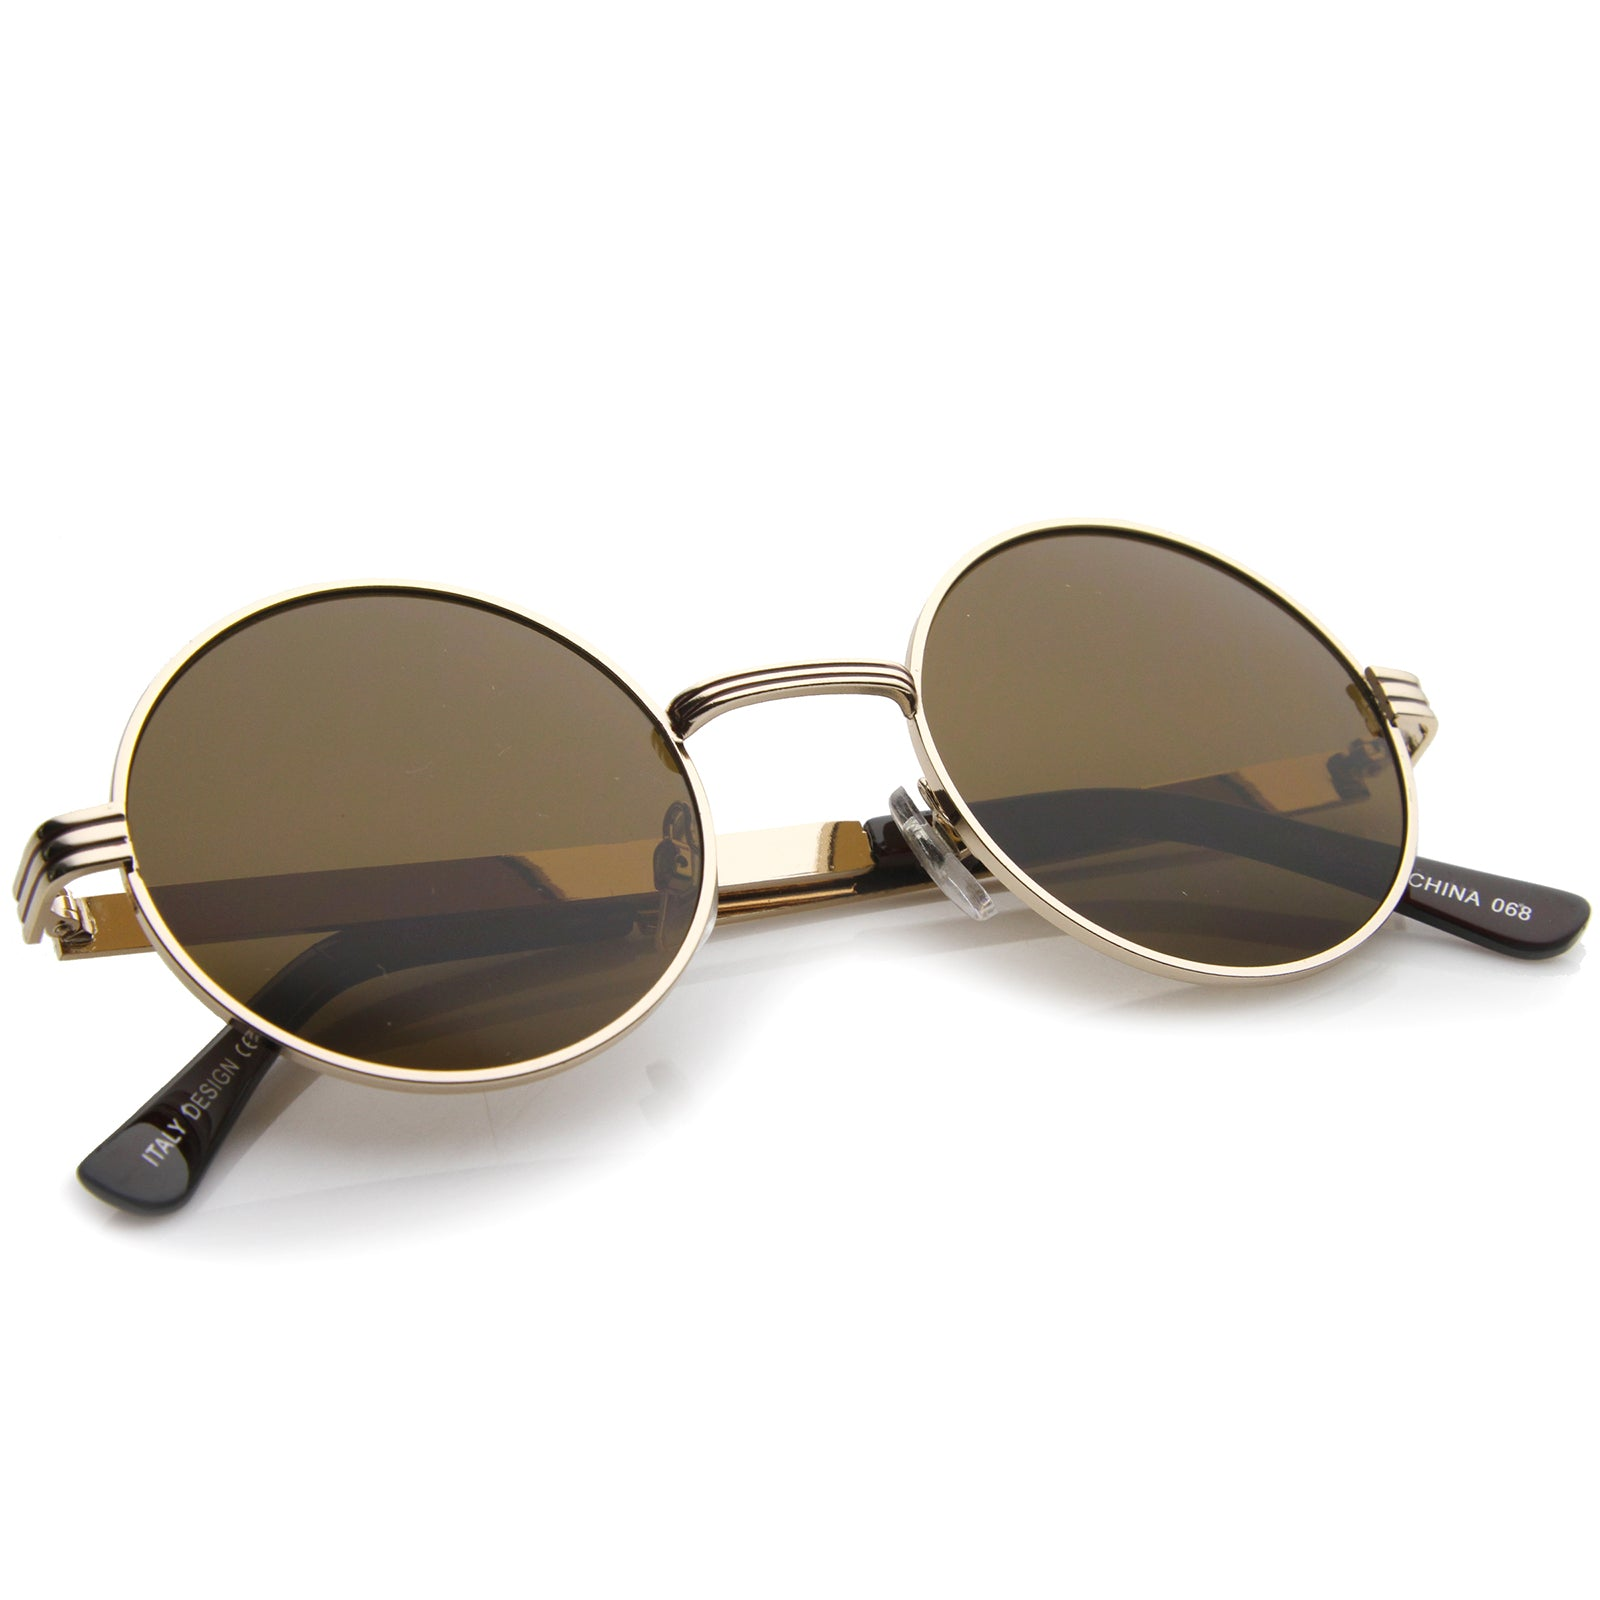 Retro Fashion Metal Textured Frame Flat Lens Round Sunglasses 50mm - sunglass.la - 8